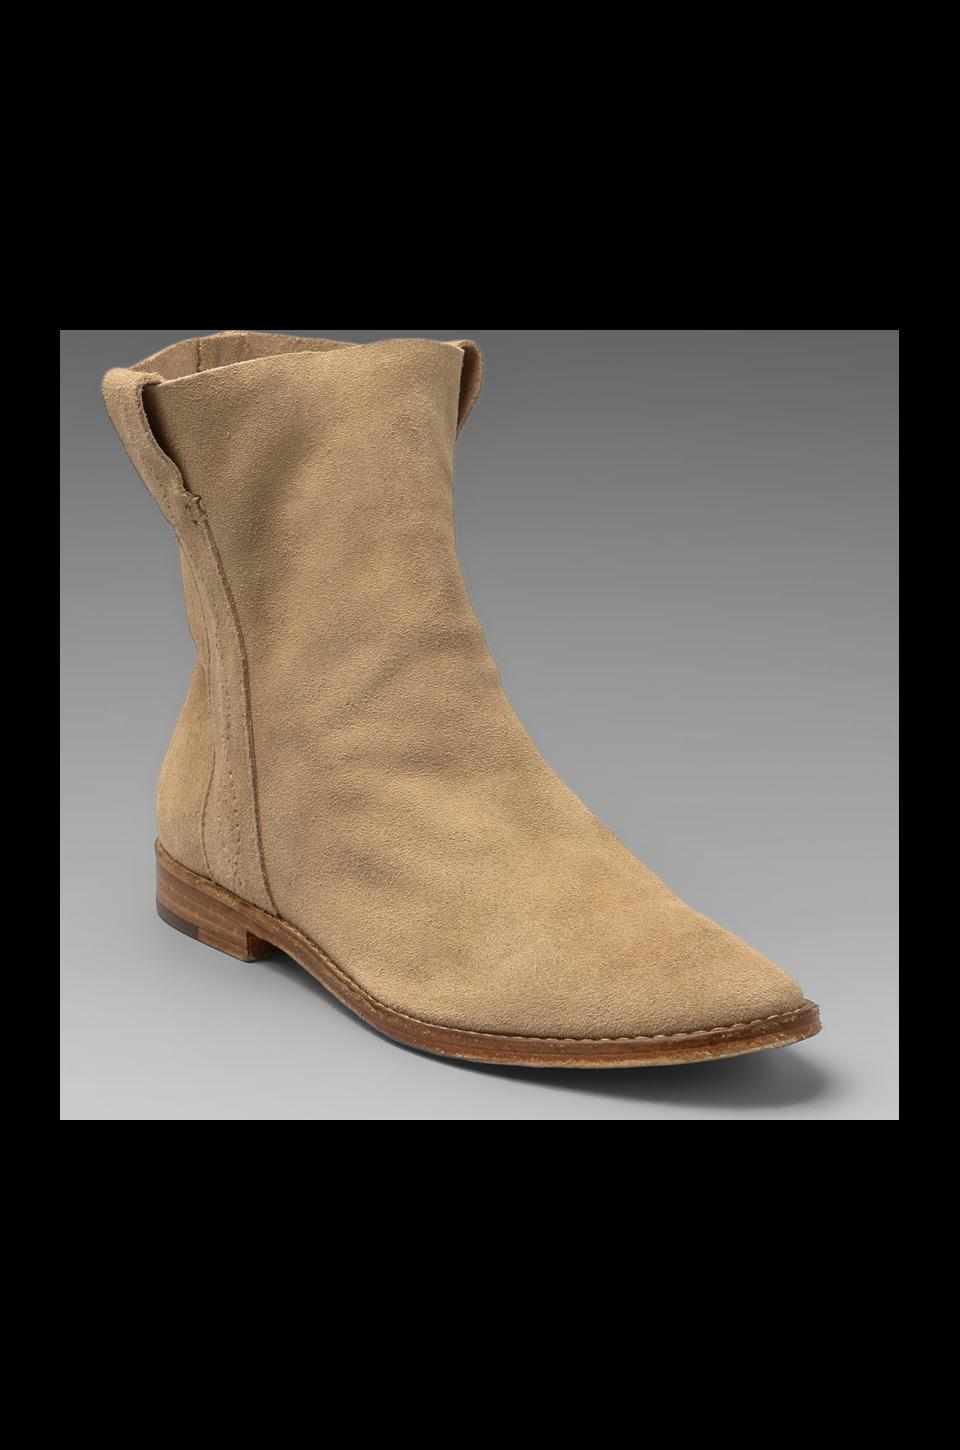 Joie Pinyon Boot in Beige